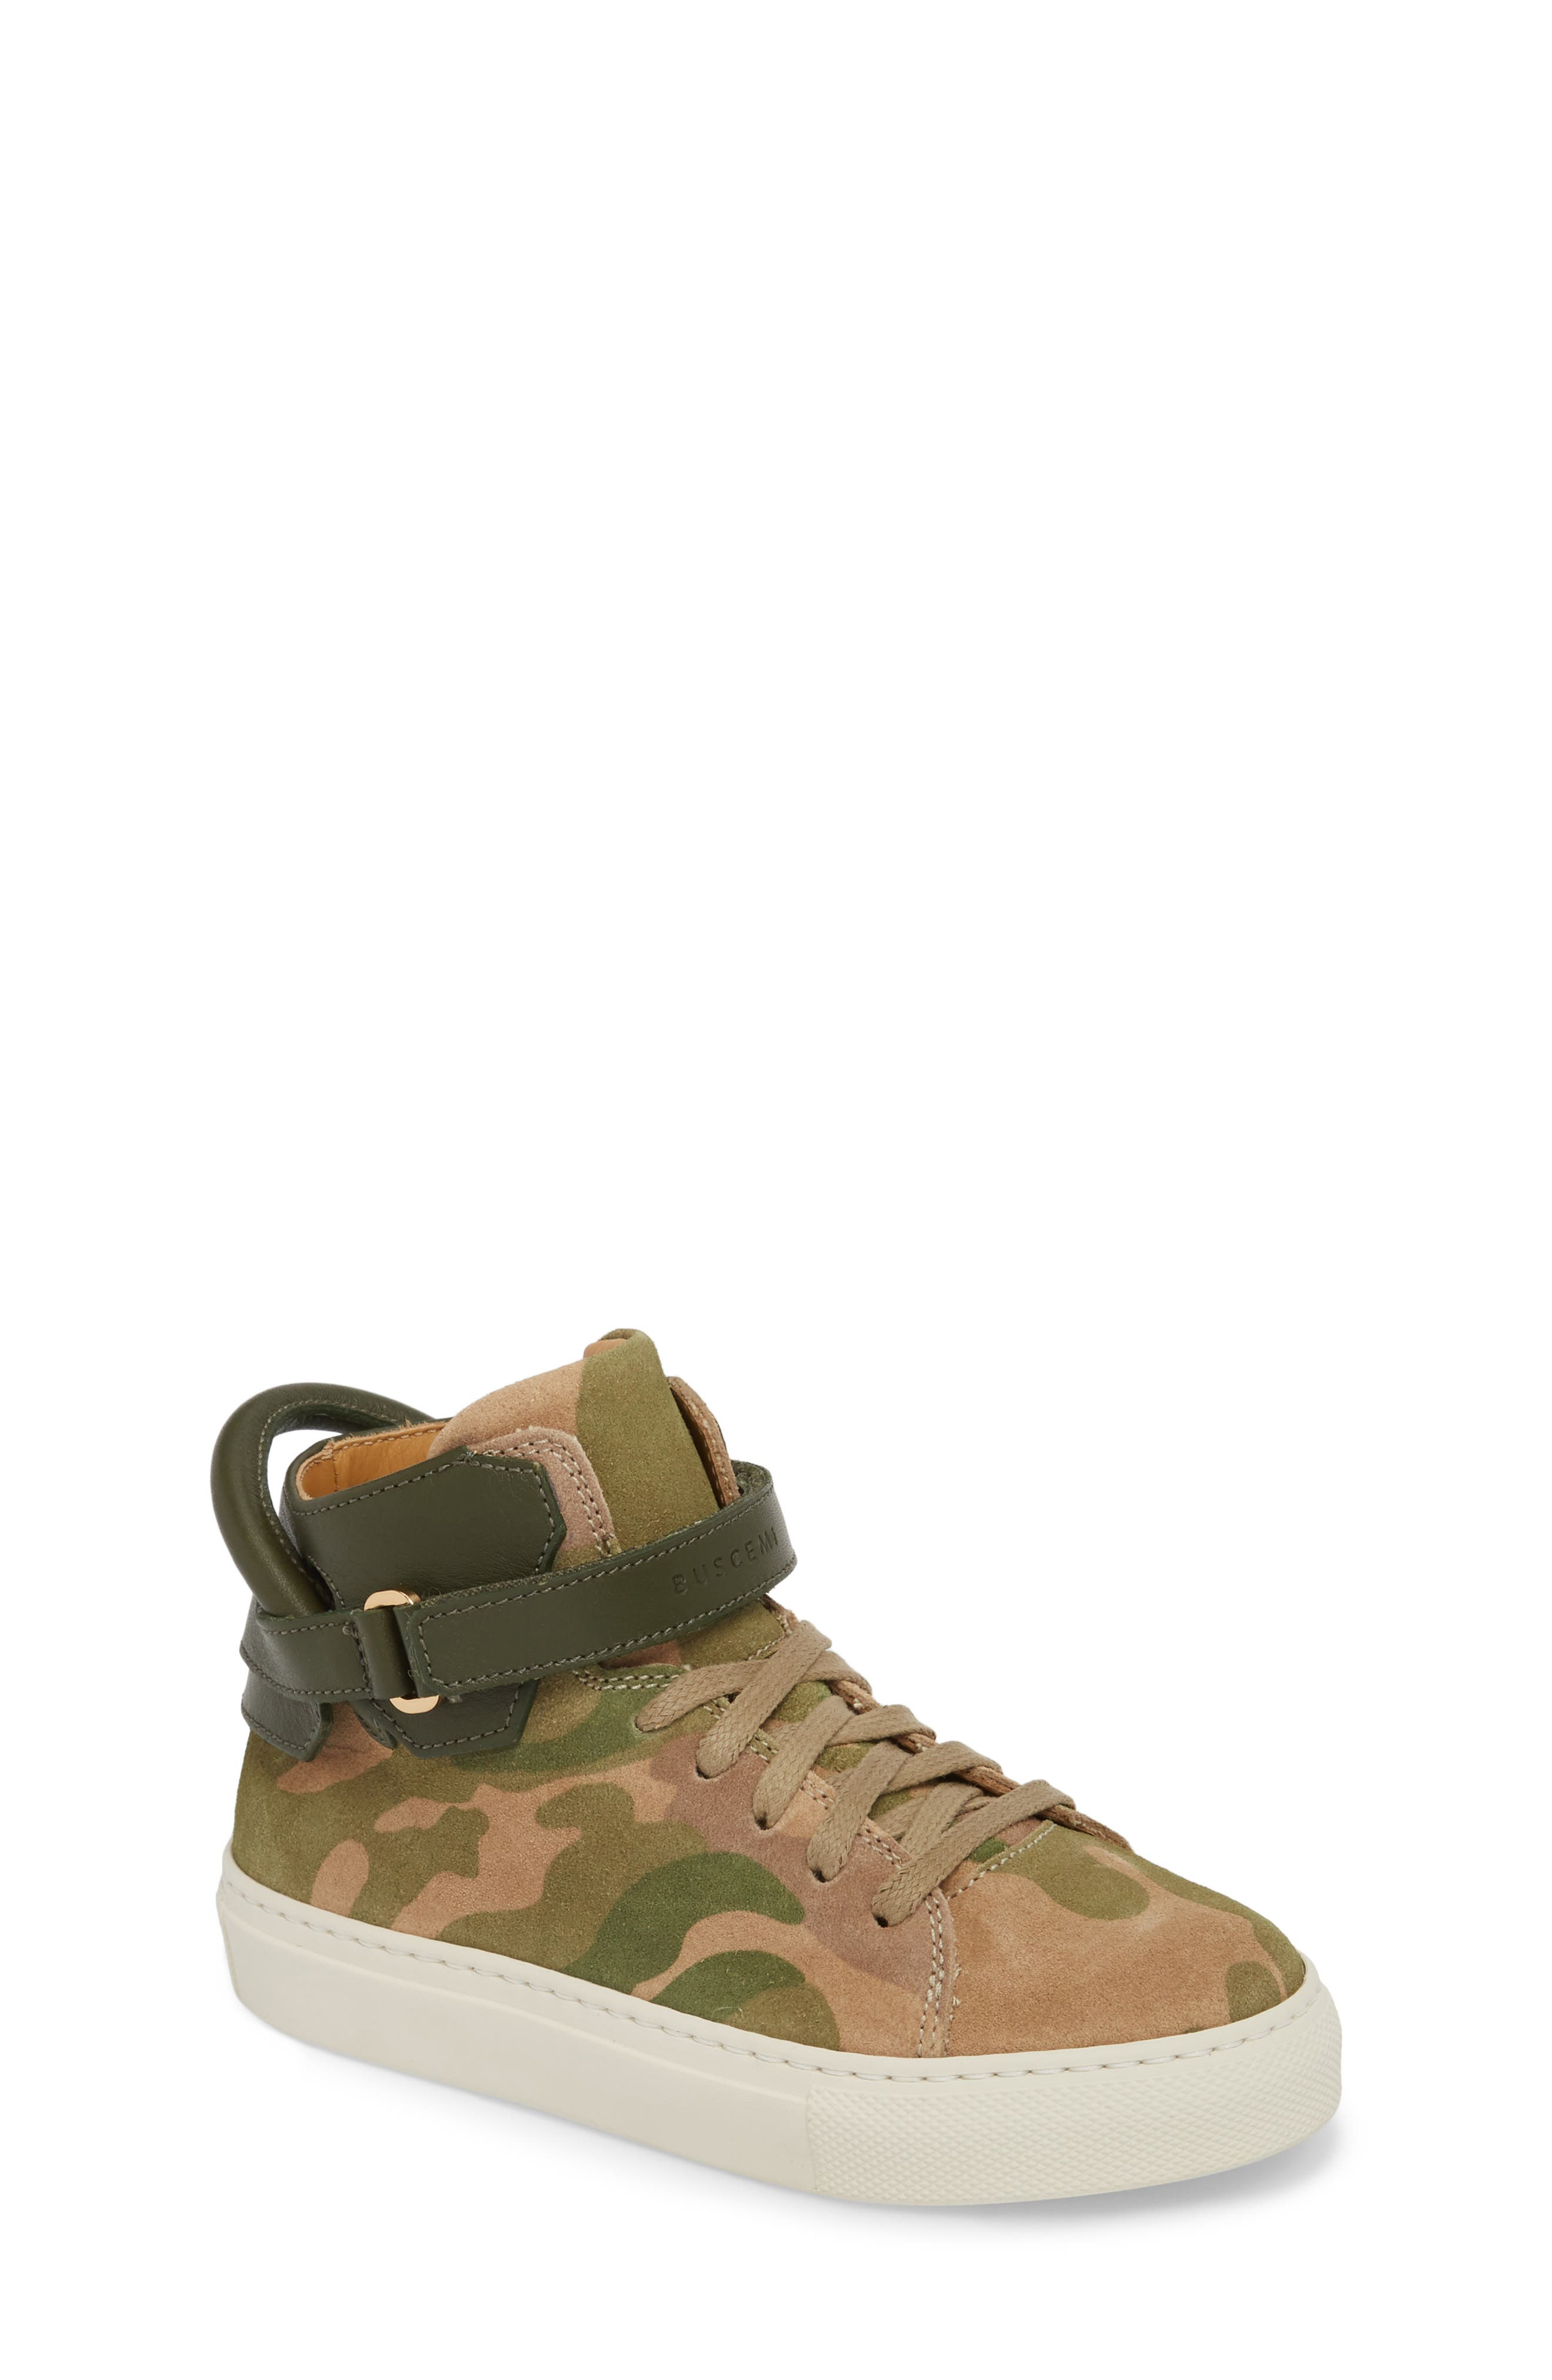 Suede High Top Sneaker,                         Main,                         color, CAMO SUEDE